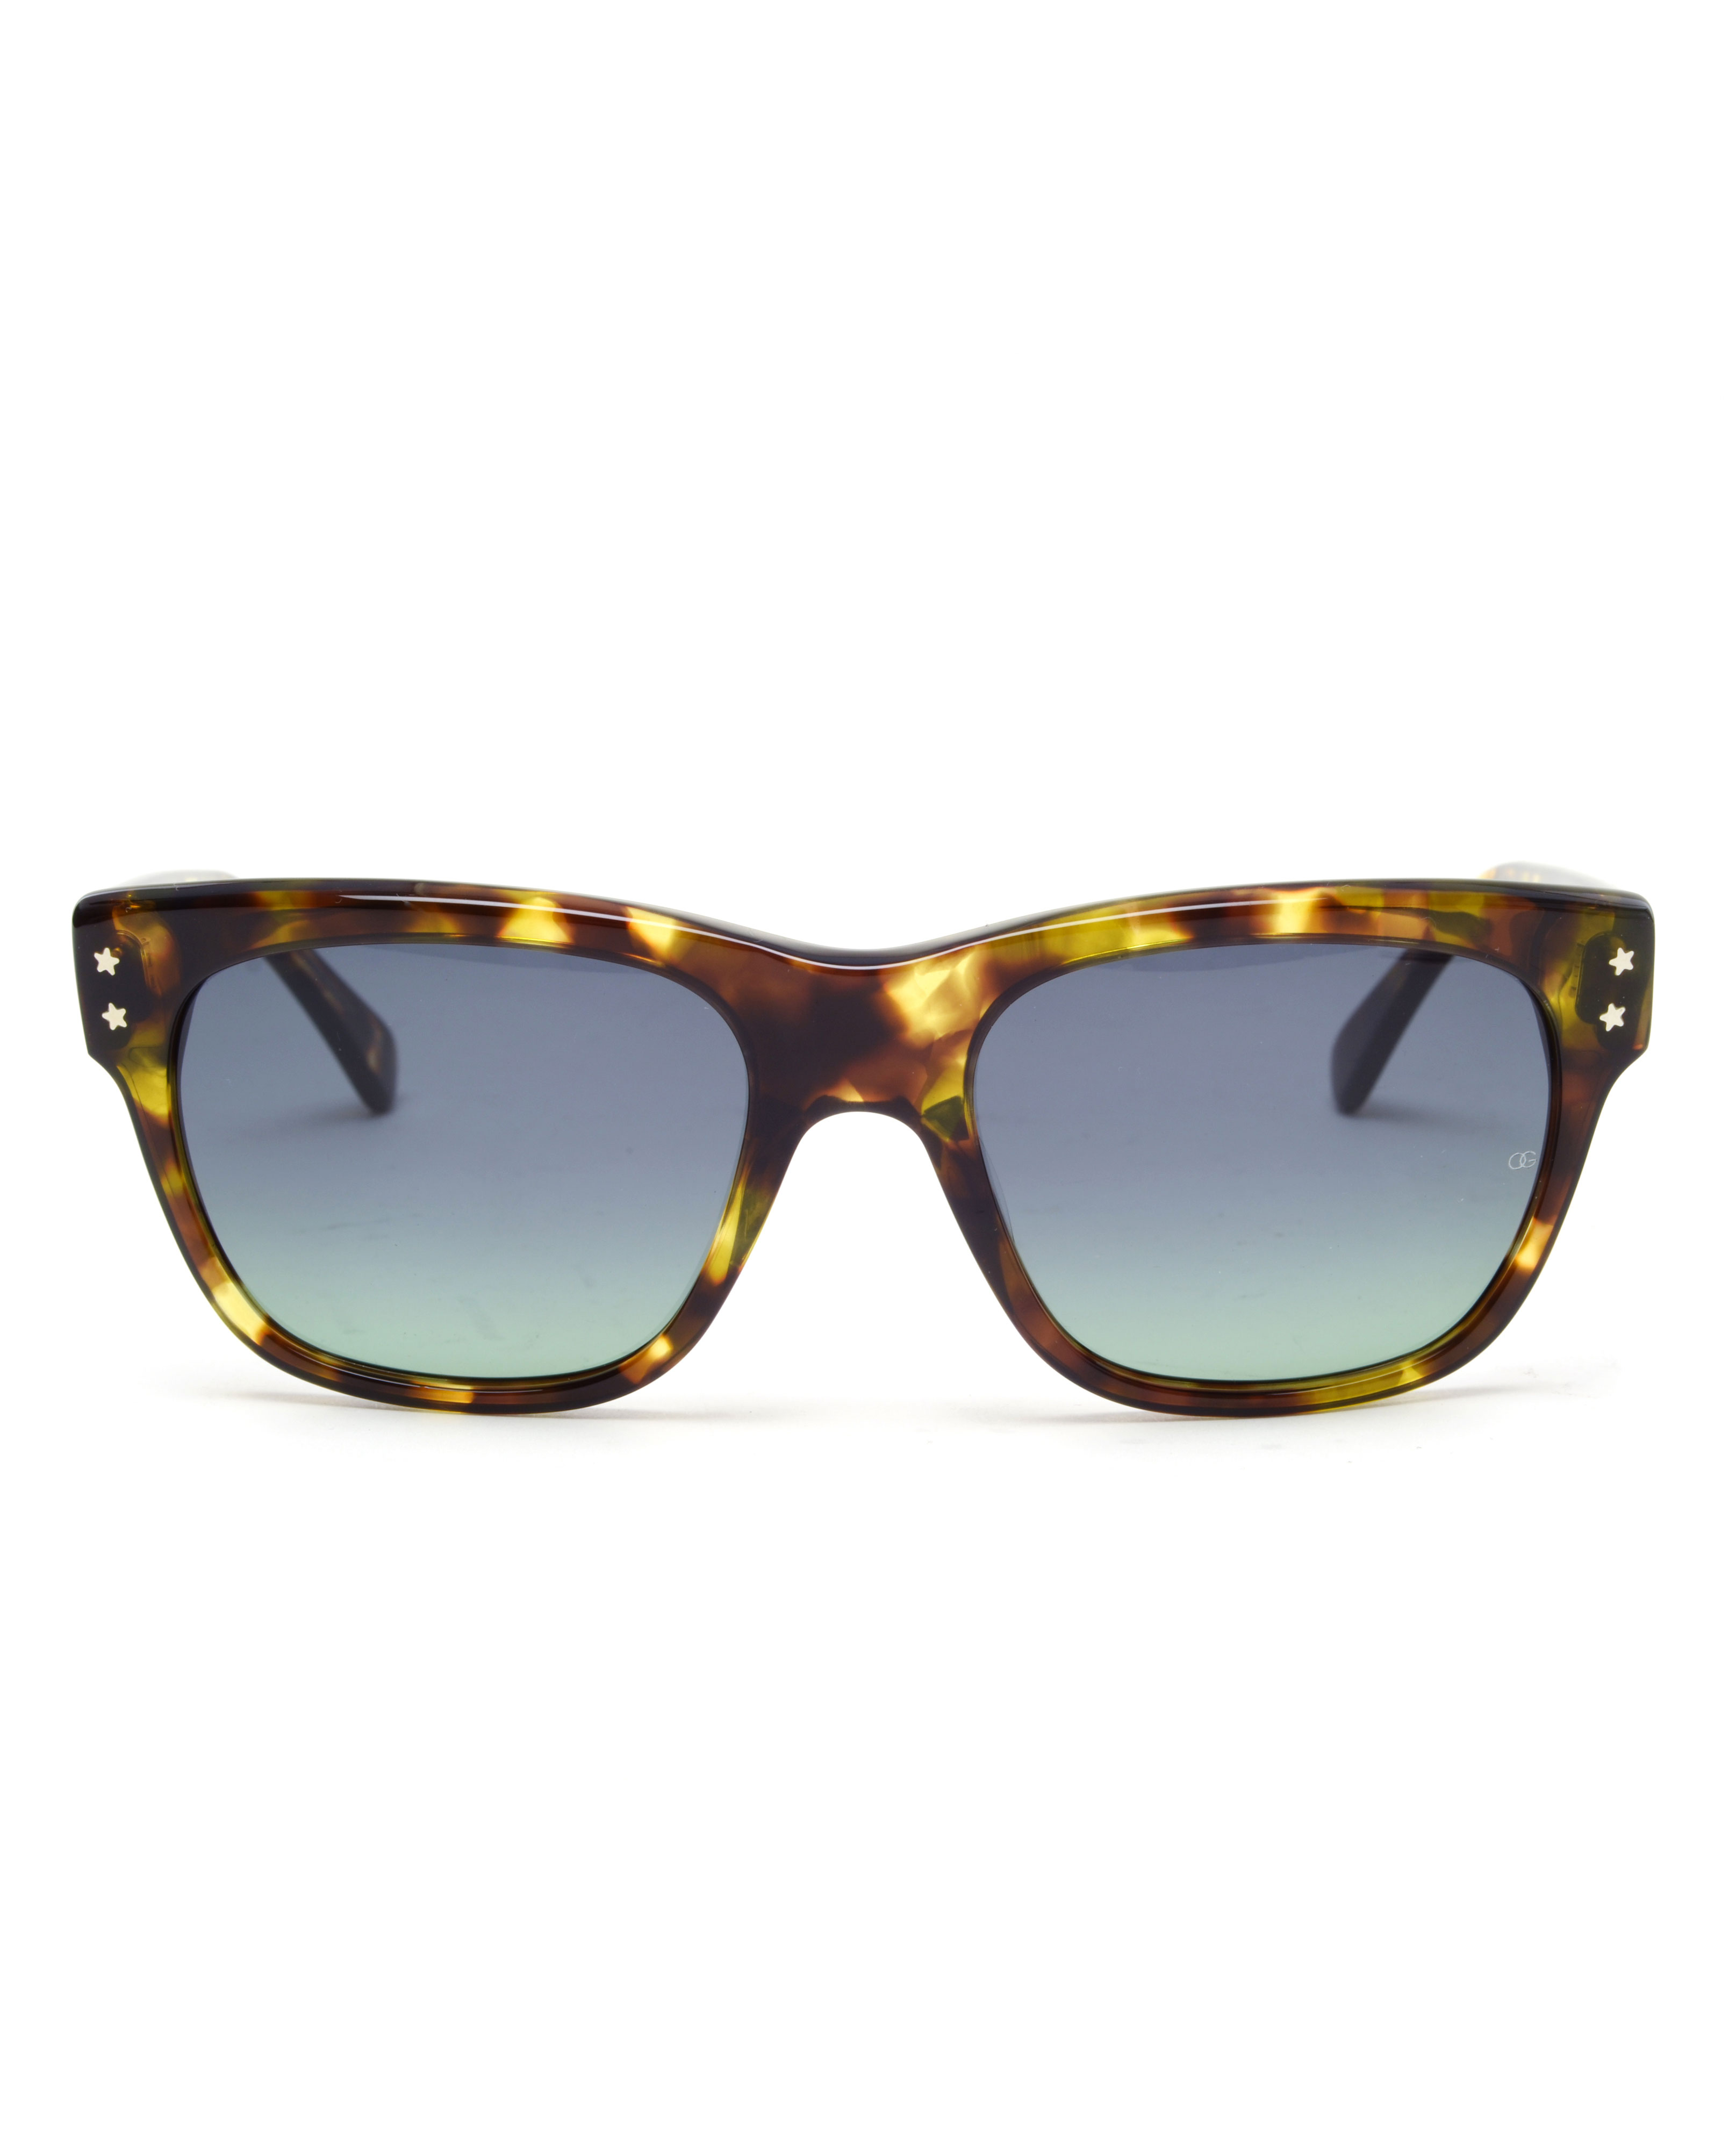 6fb1c4a53b Oliver Goldsmith Lord Split Acetate Sunglasses in Brown - Lyst